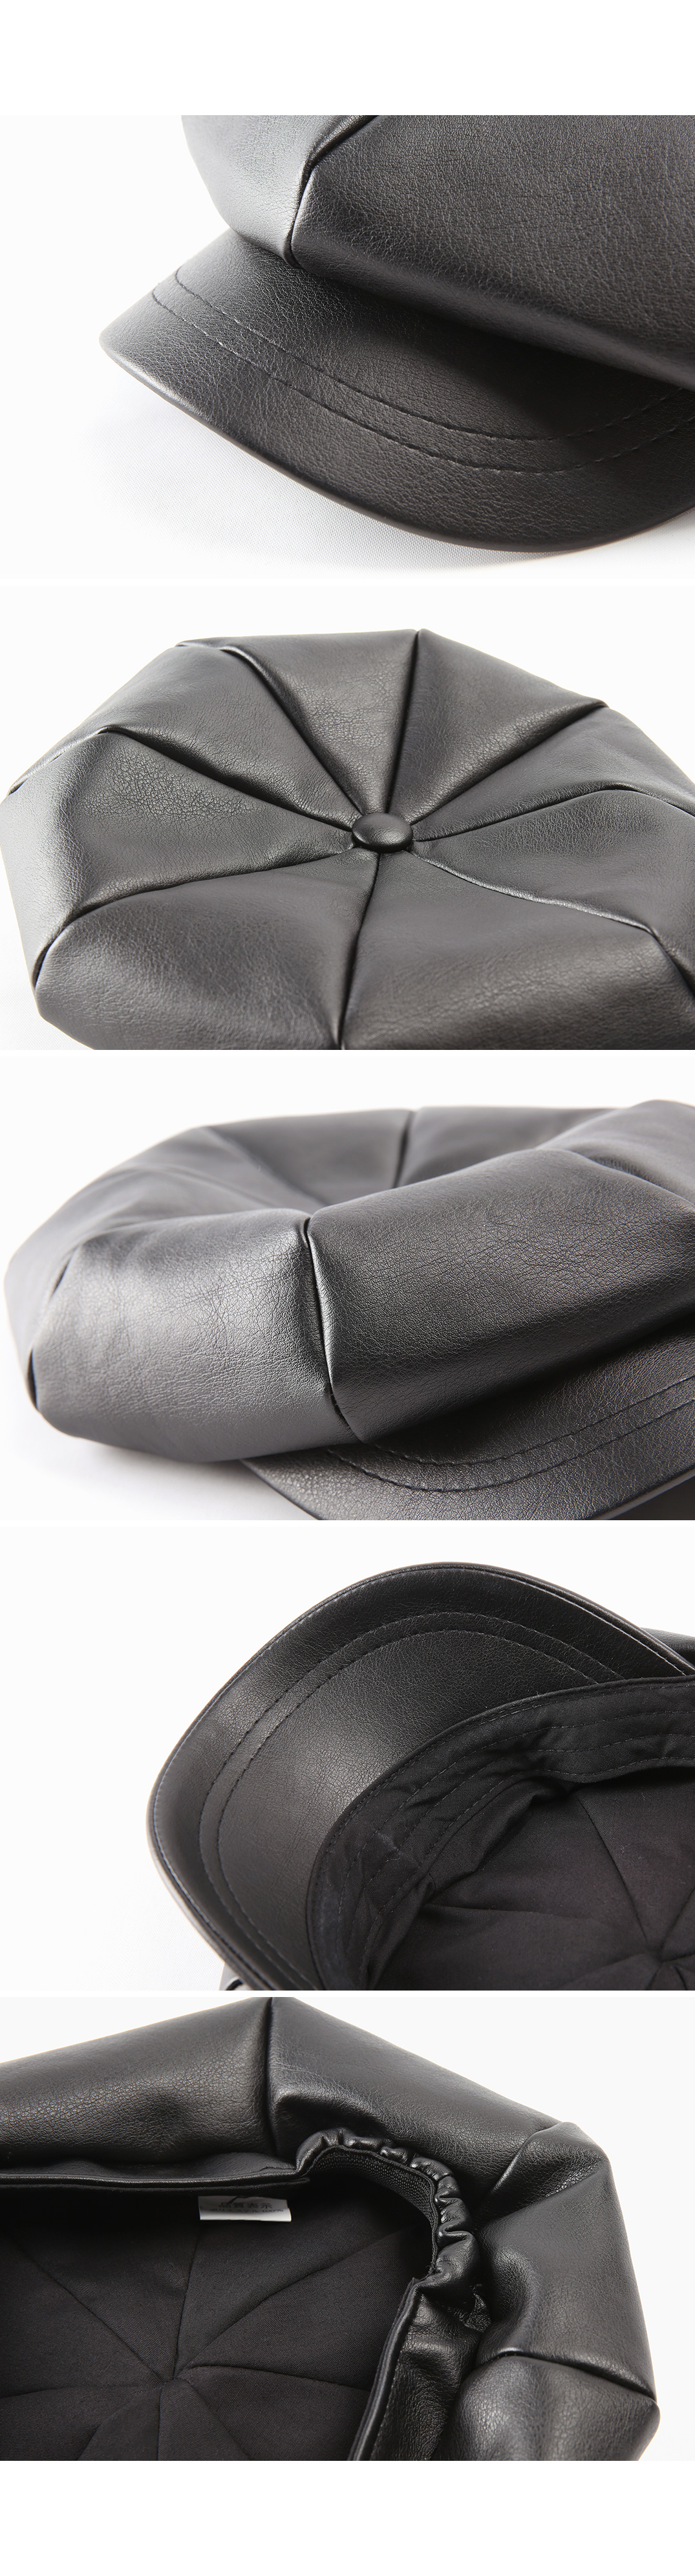 hard leather hunting cap